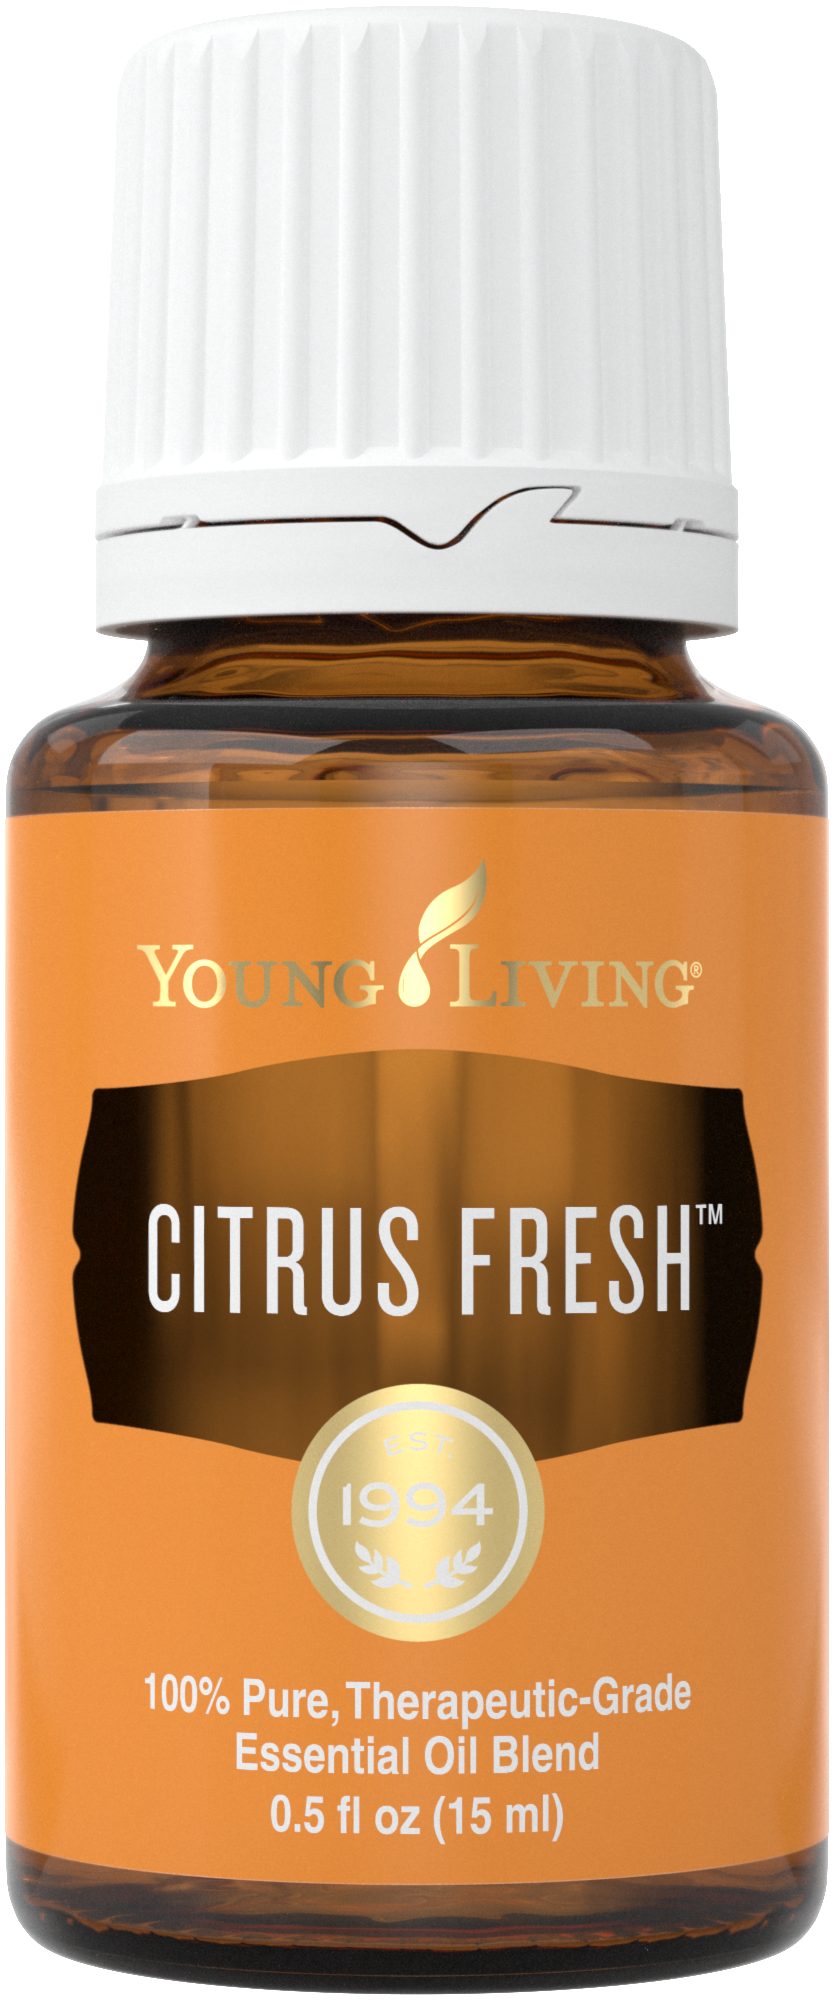 citrusfresh_15ml_silo_us_2016_24418893892_o.png